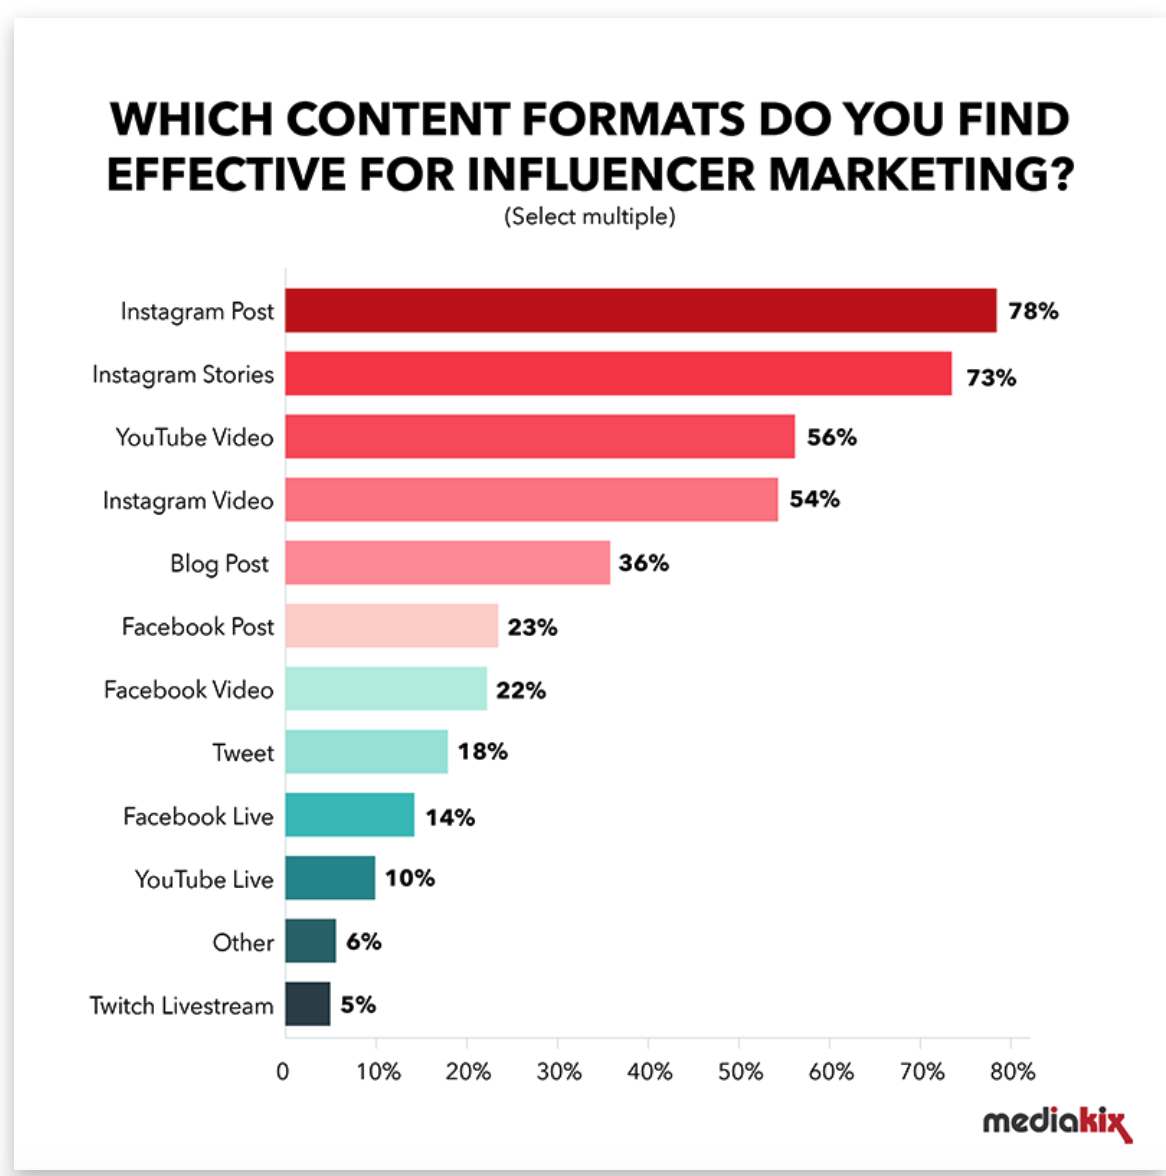 Graph showing effective content formats for influencer marketing